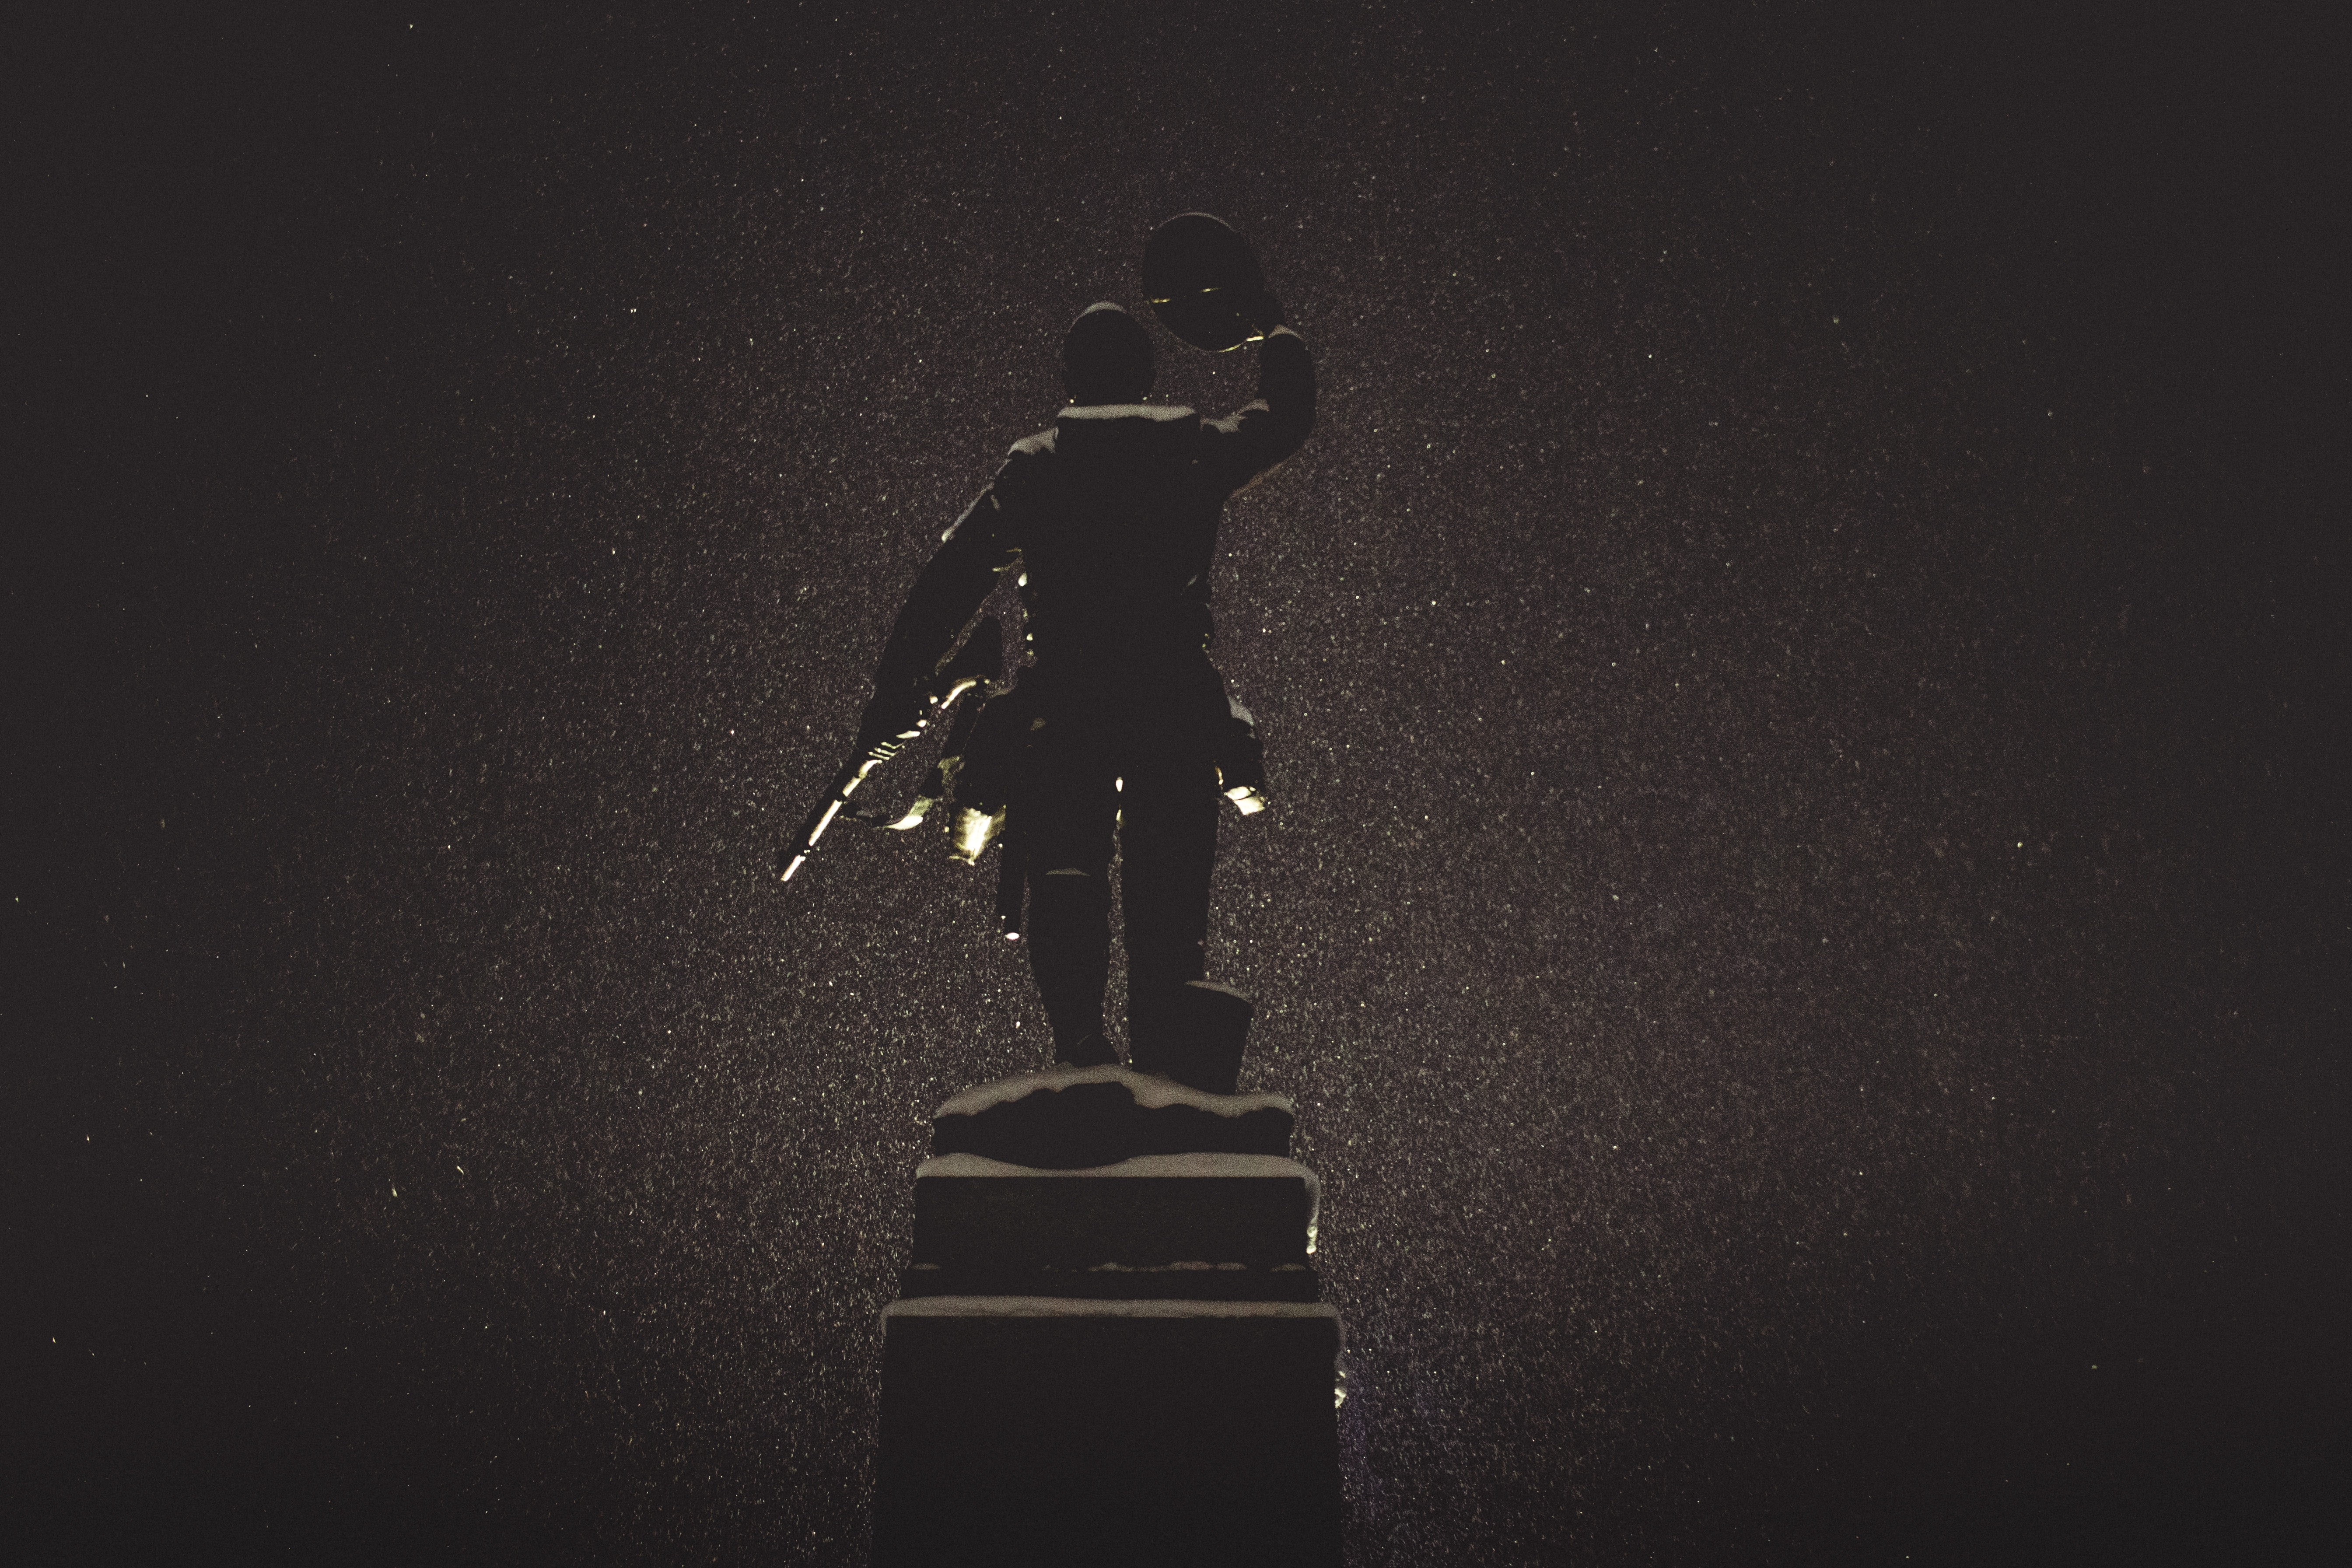 silhouette of statue against black background